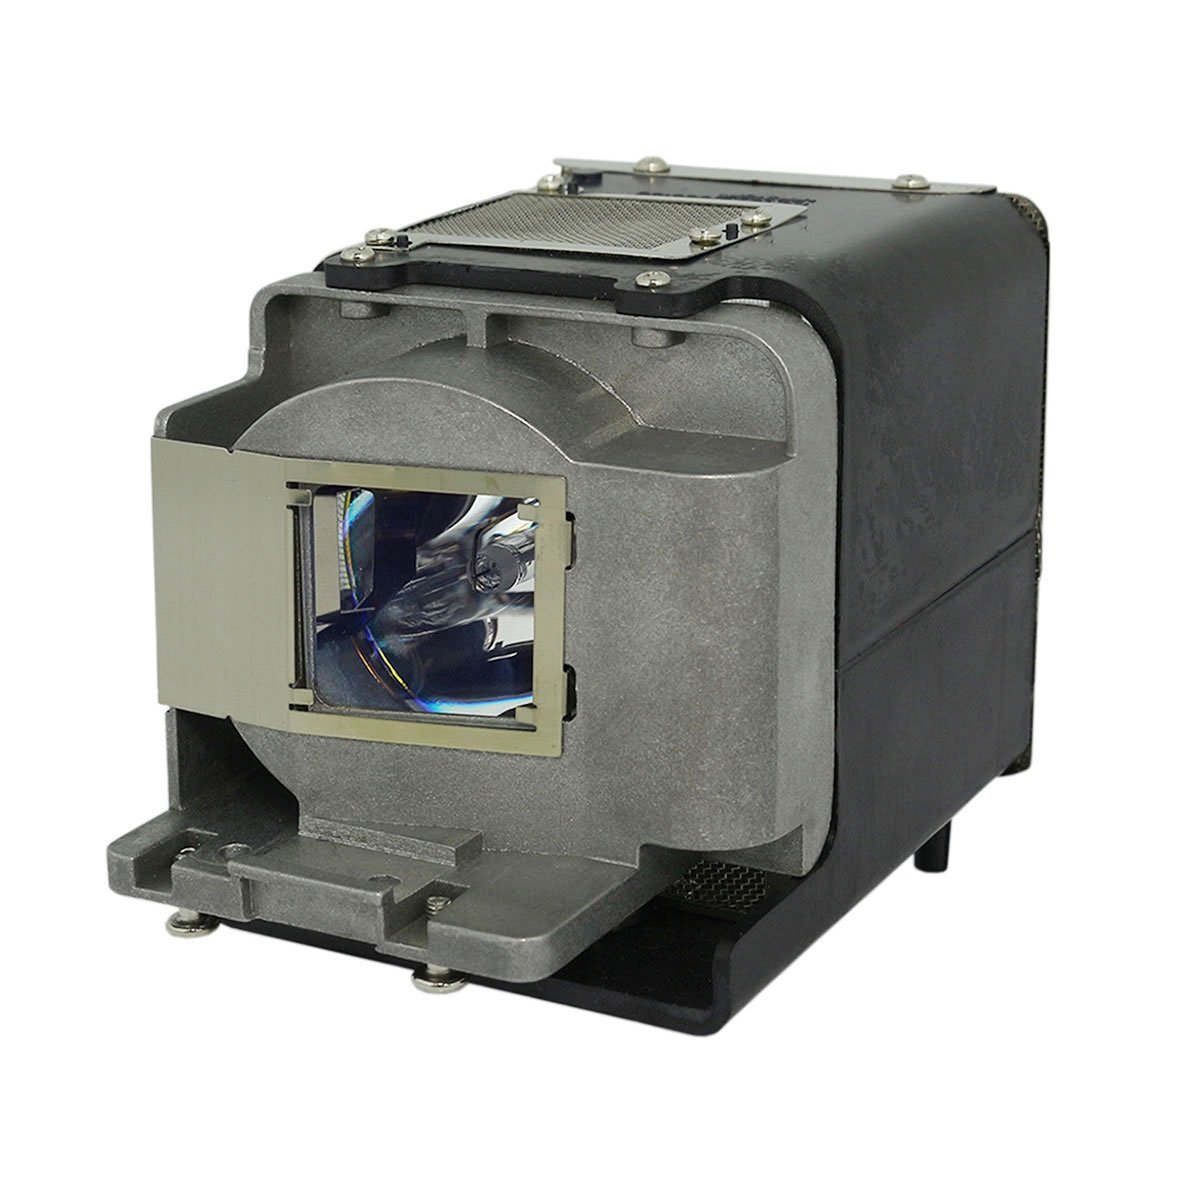 for VLT-XD700LP Compatible Projector Lamp with Housing for Mitsubishi FD730U GW-860 UD740U WD720U XD700U by Mogobe